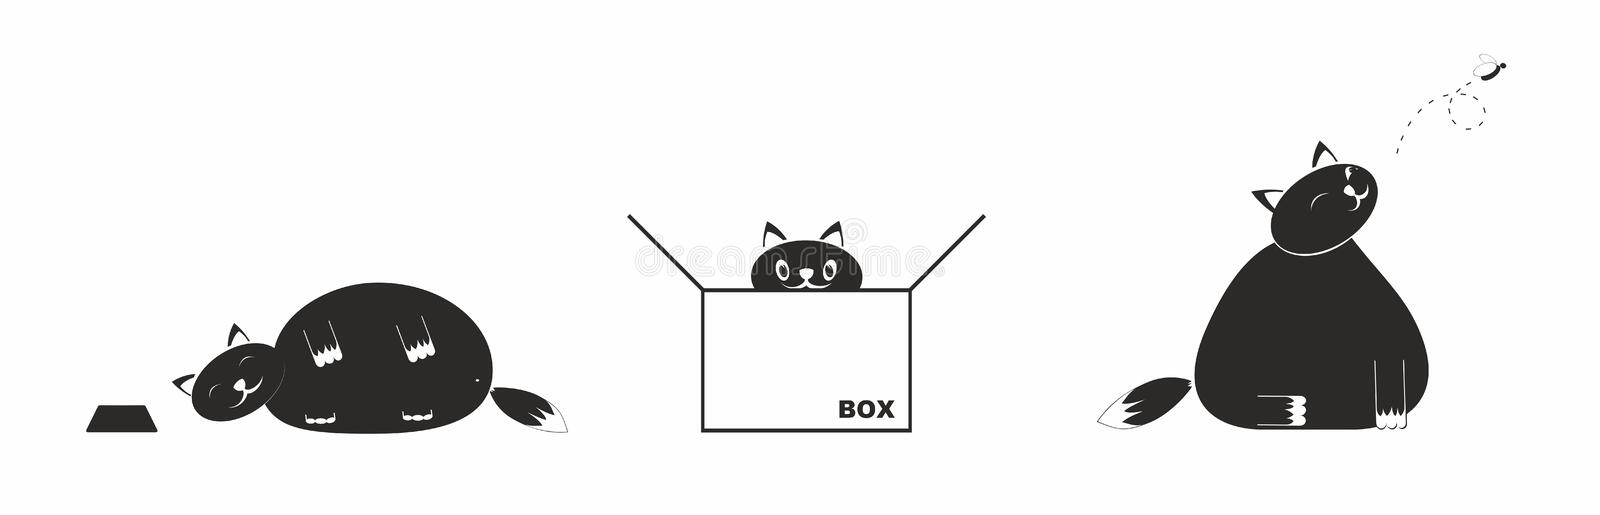 Fat lazy cat. Cute and funny fat cat stock illustration